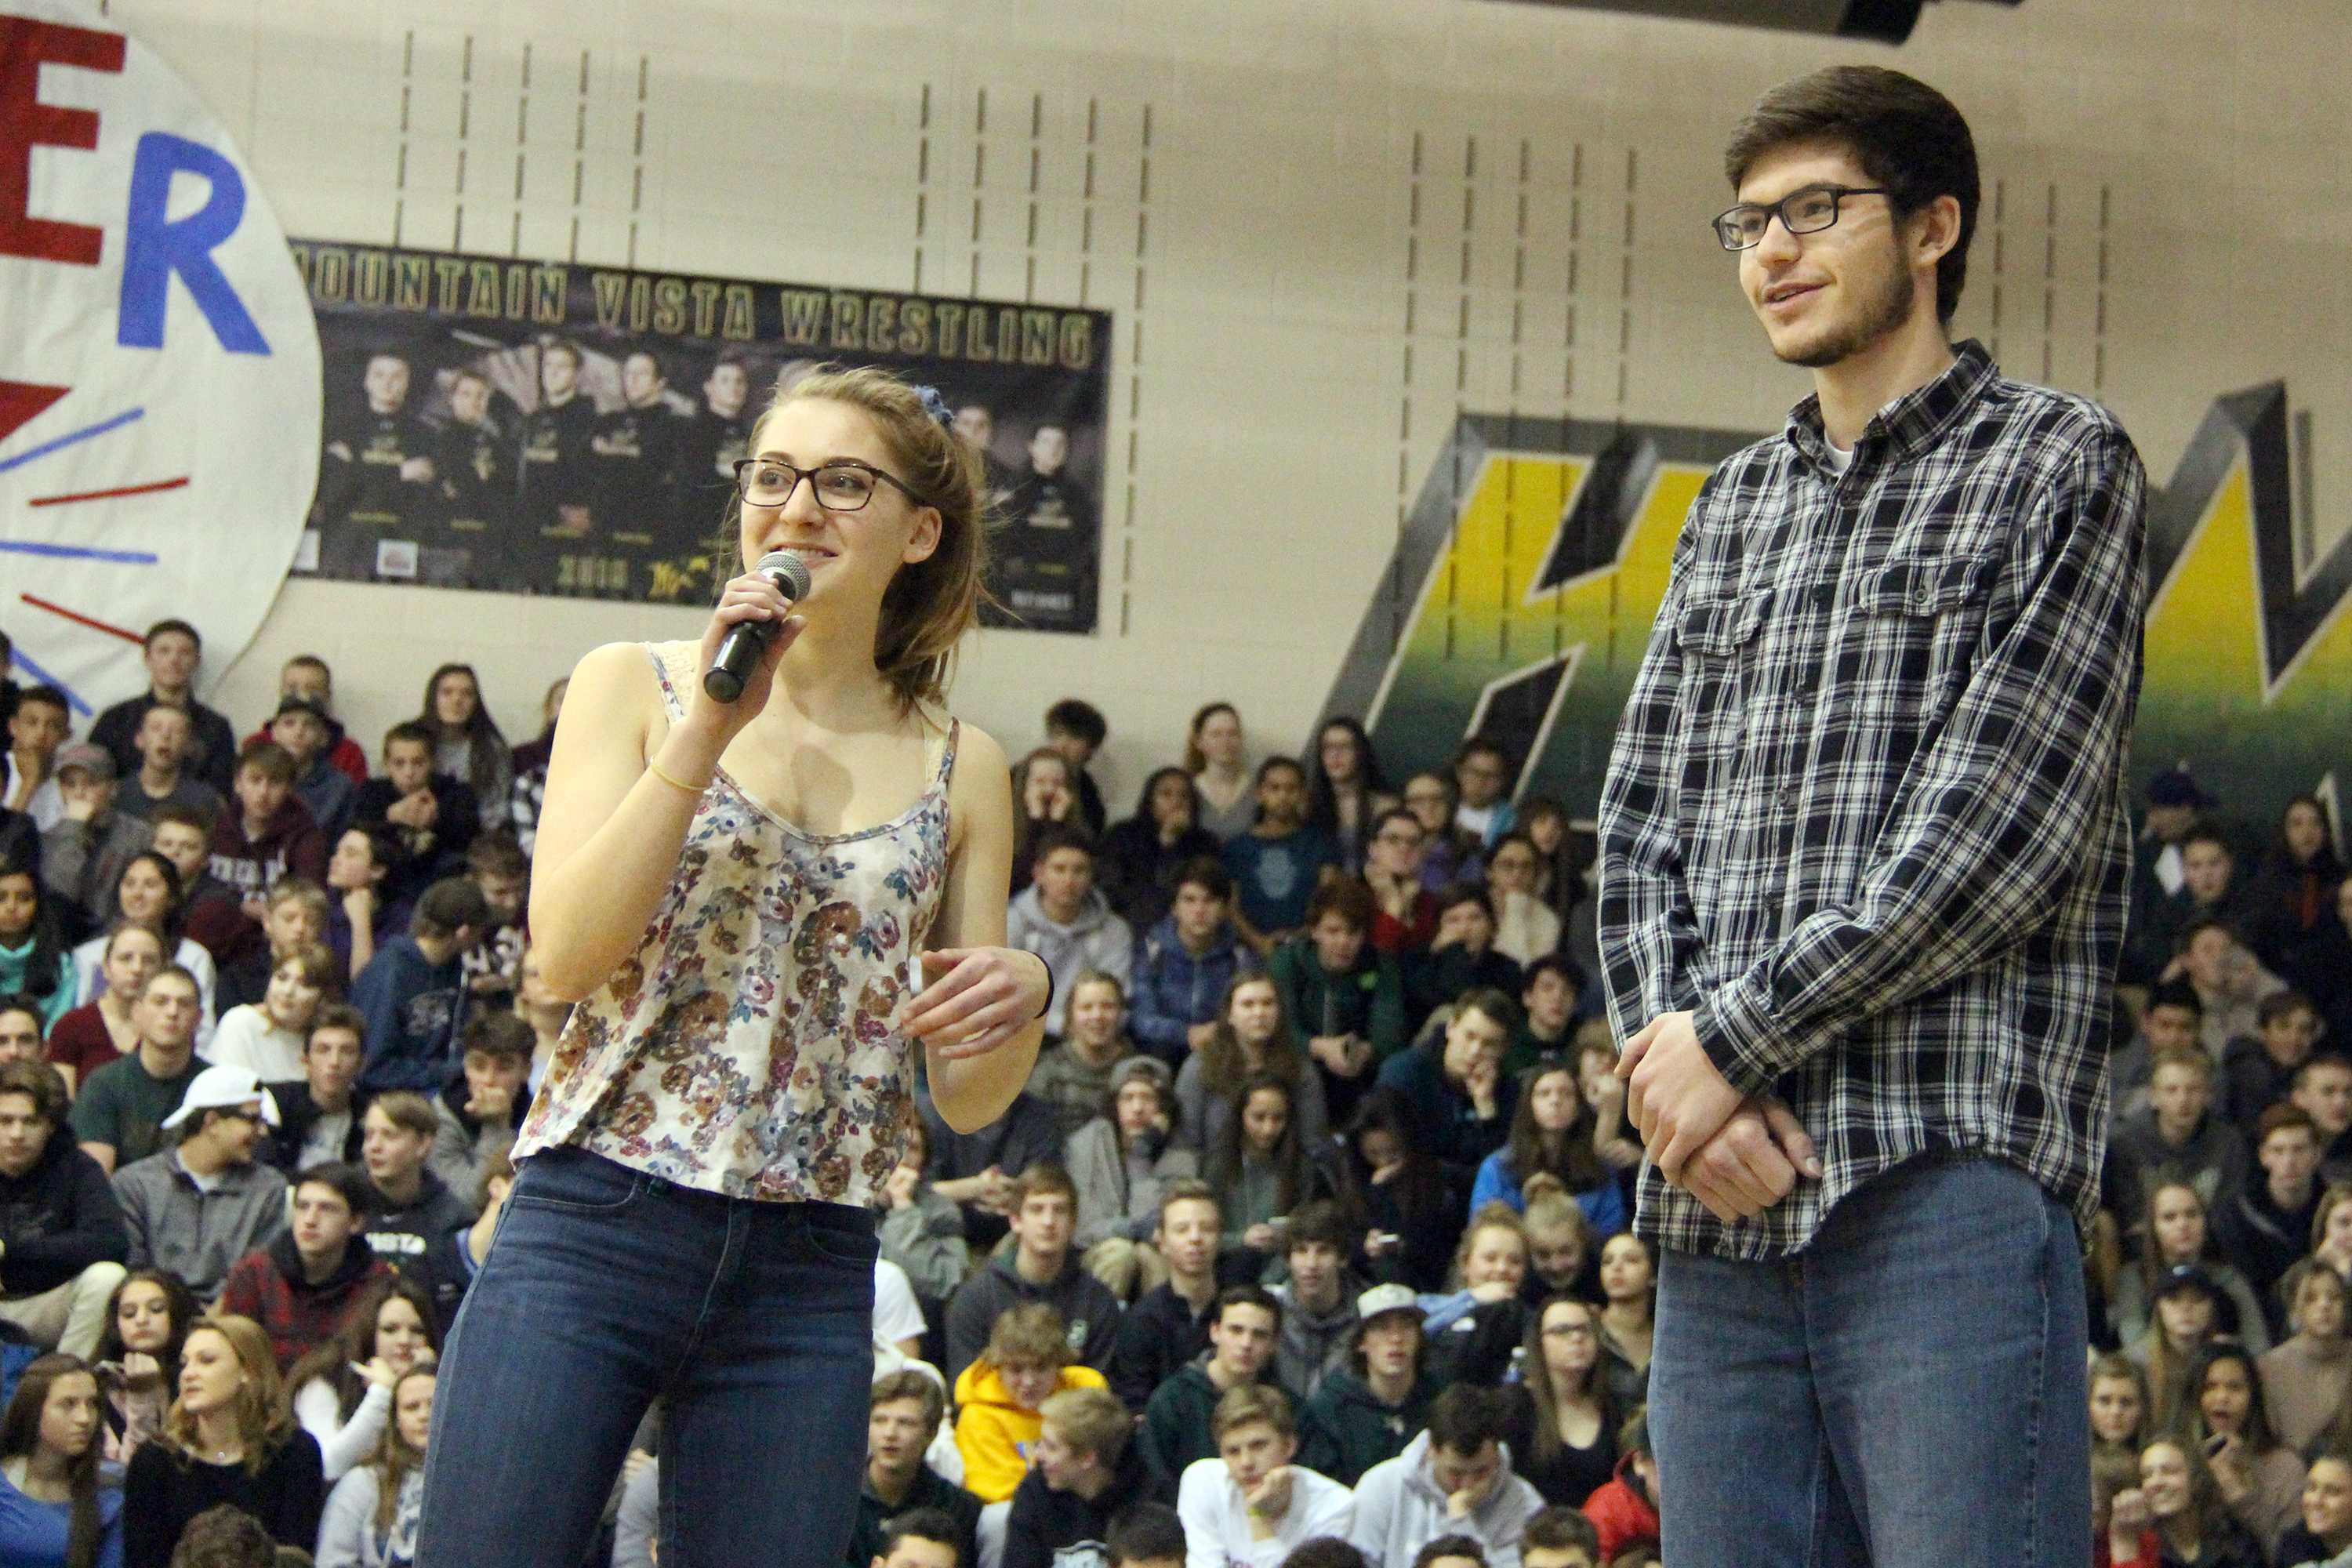 PHOTOS: Wish Week Earnings Reveal Assembly